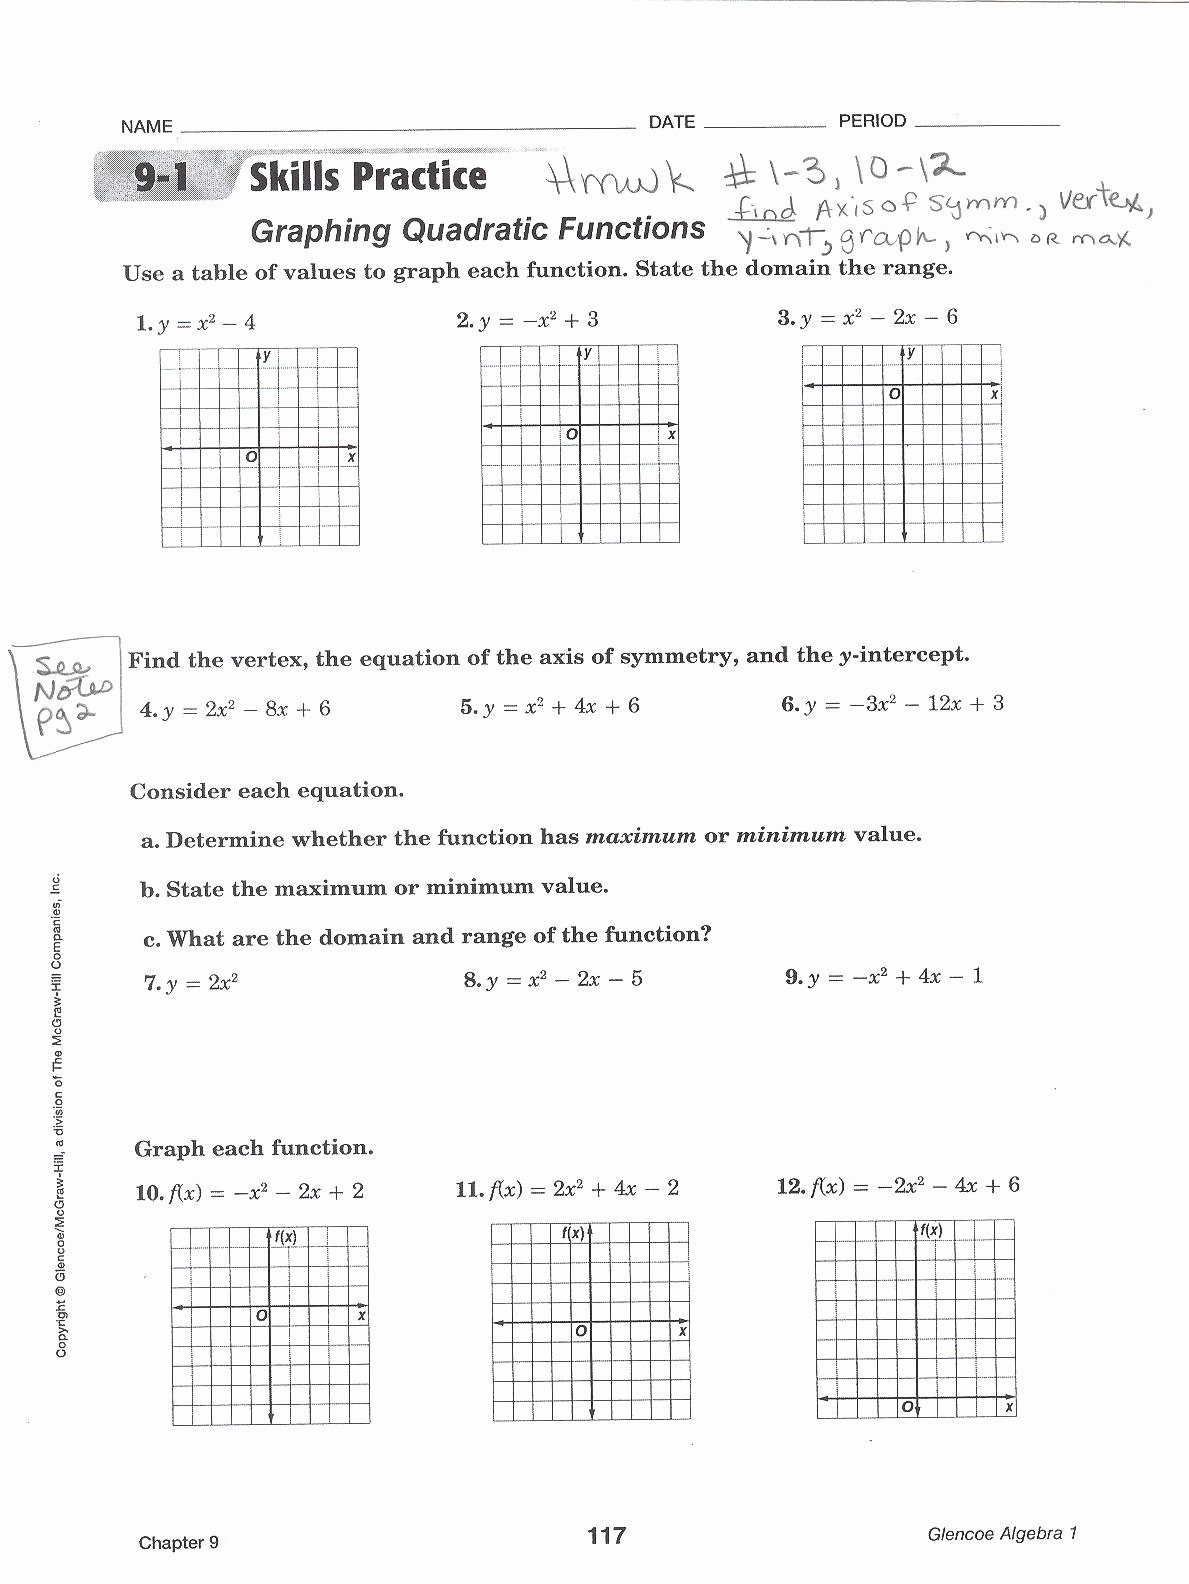 Characteristics Of Functions Worksheet Awesome Characteristics Quadratic Functions New Worksheet